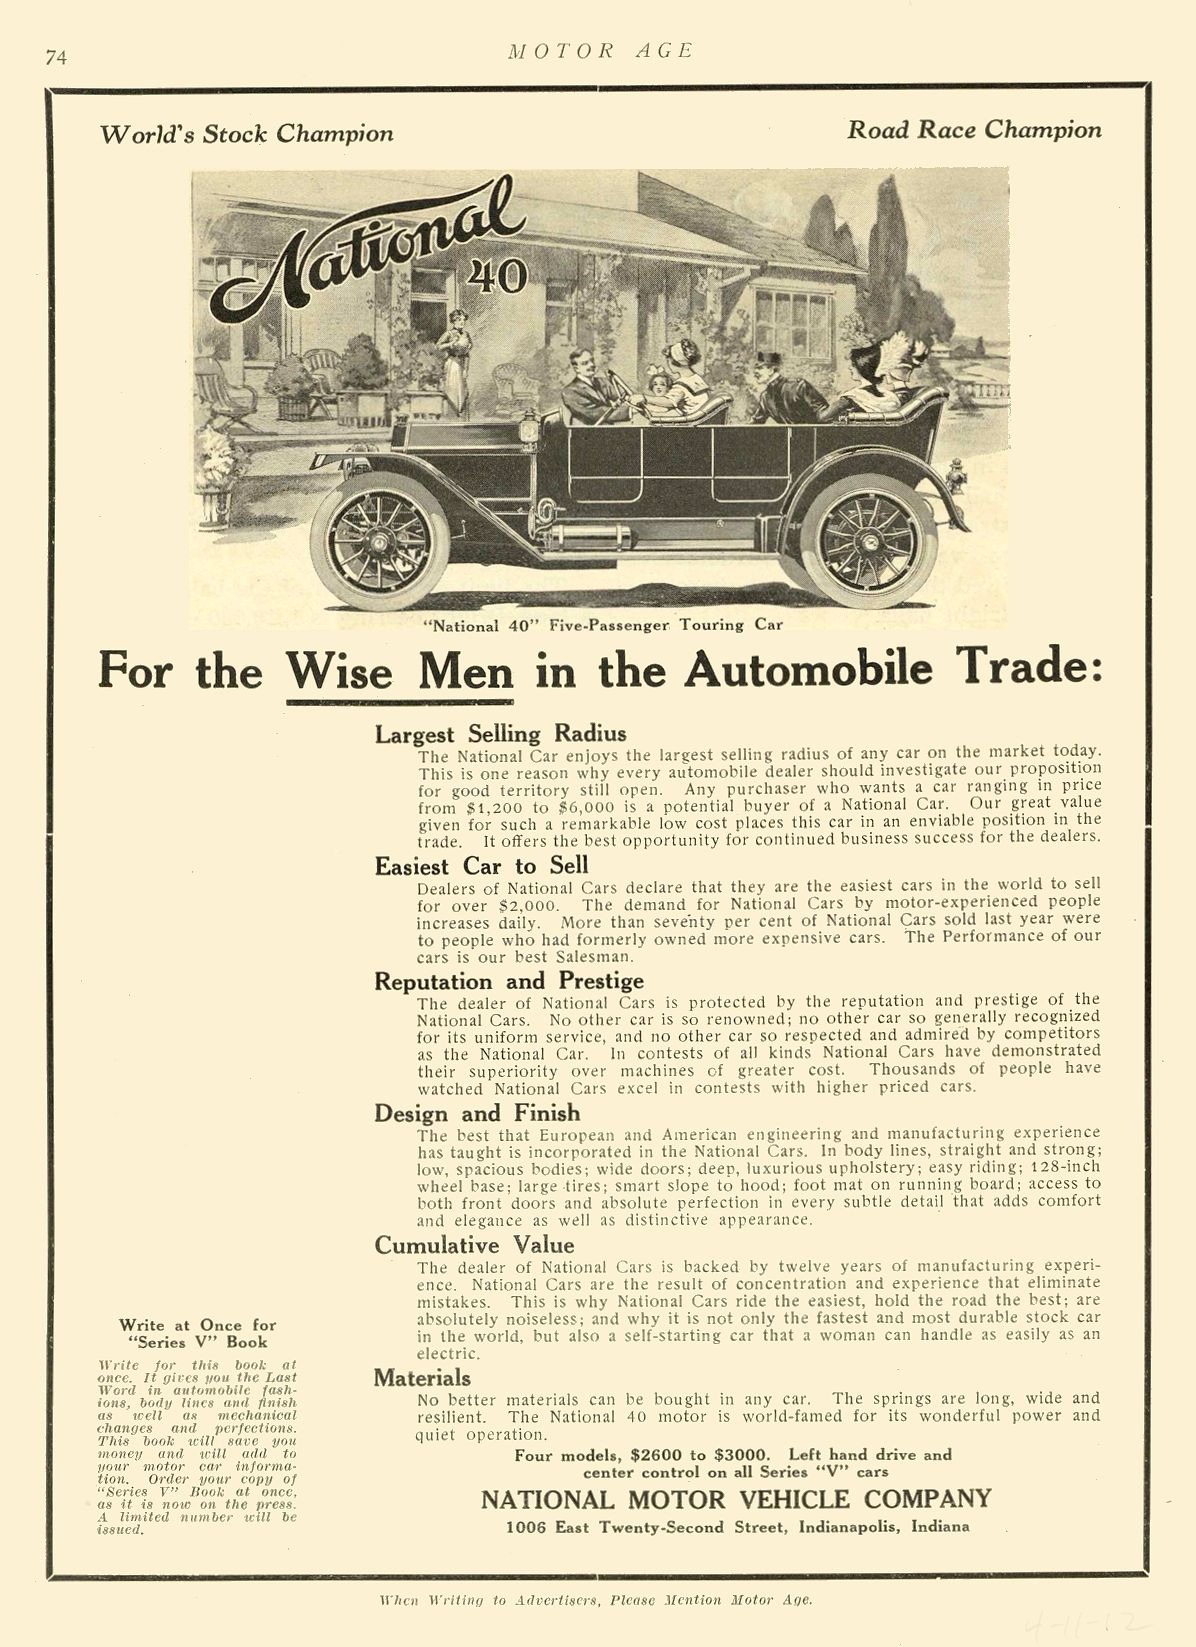 1912 4 11 NATIONAL National 40 For the Wise Men in the Automobile Trade NATIONAL MOTOR VEHICLE COMPANY Indianapolis, IND MOTOR AGE April 11, 1912 8.5″x11.75″ page 74